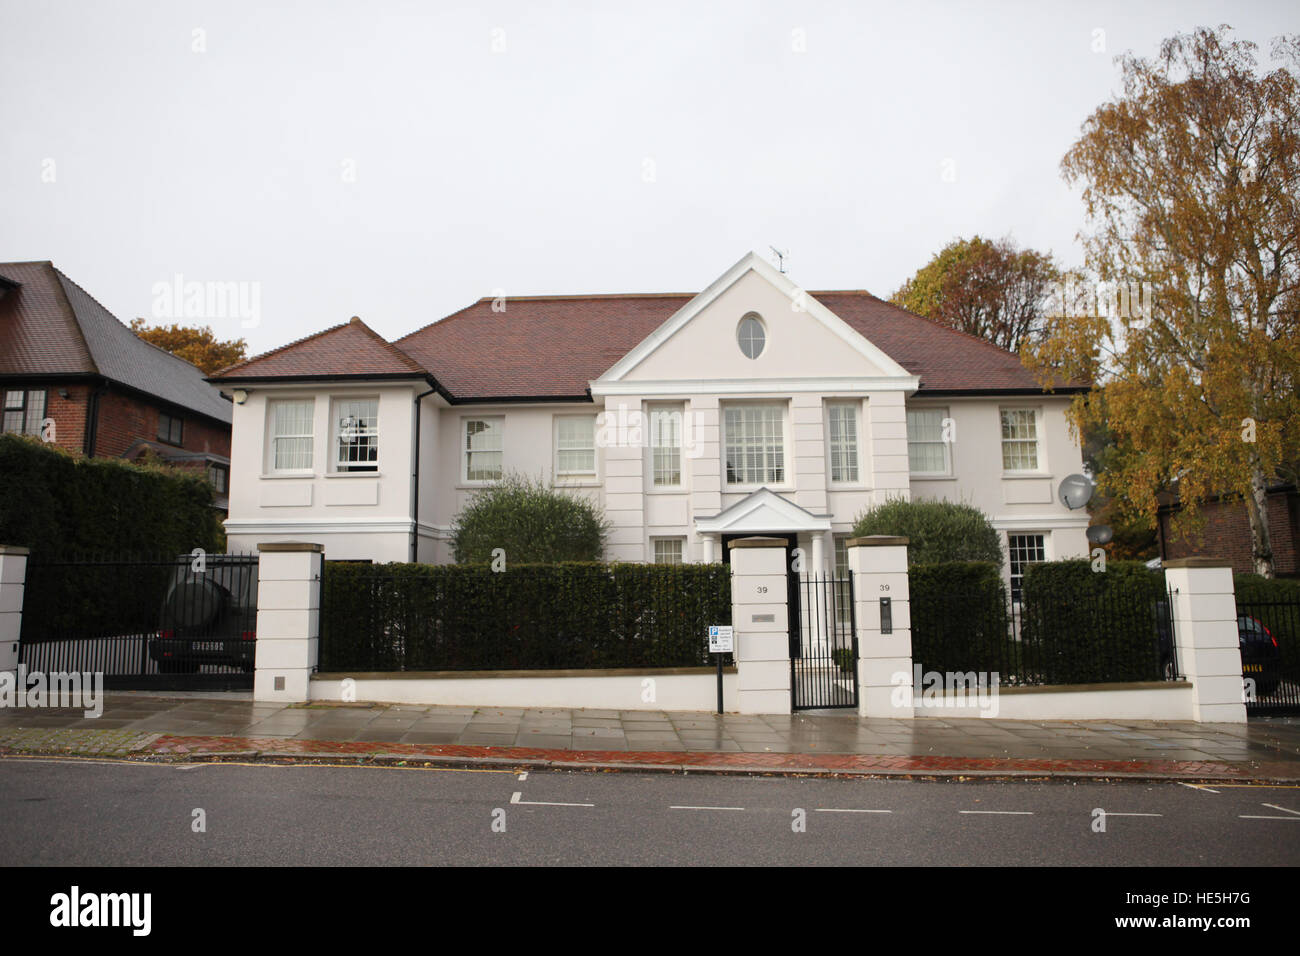 Mesut Özil Has Bought A New £10 Million House Next Door To The House He Has  Been Renting In North London. The House Has Six Bedrooms, Six Reception  Rooms, ...